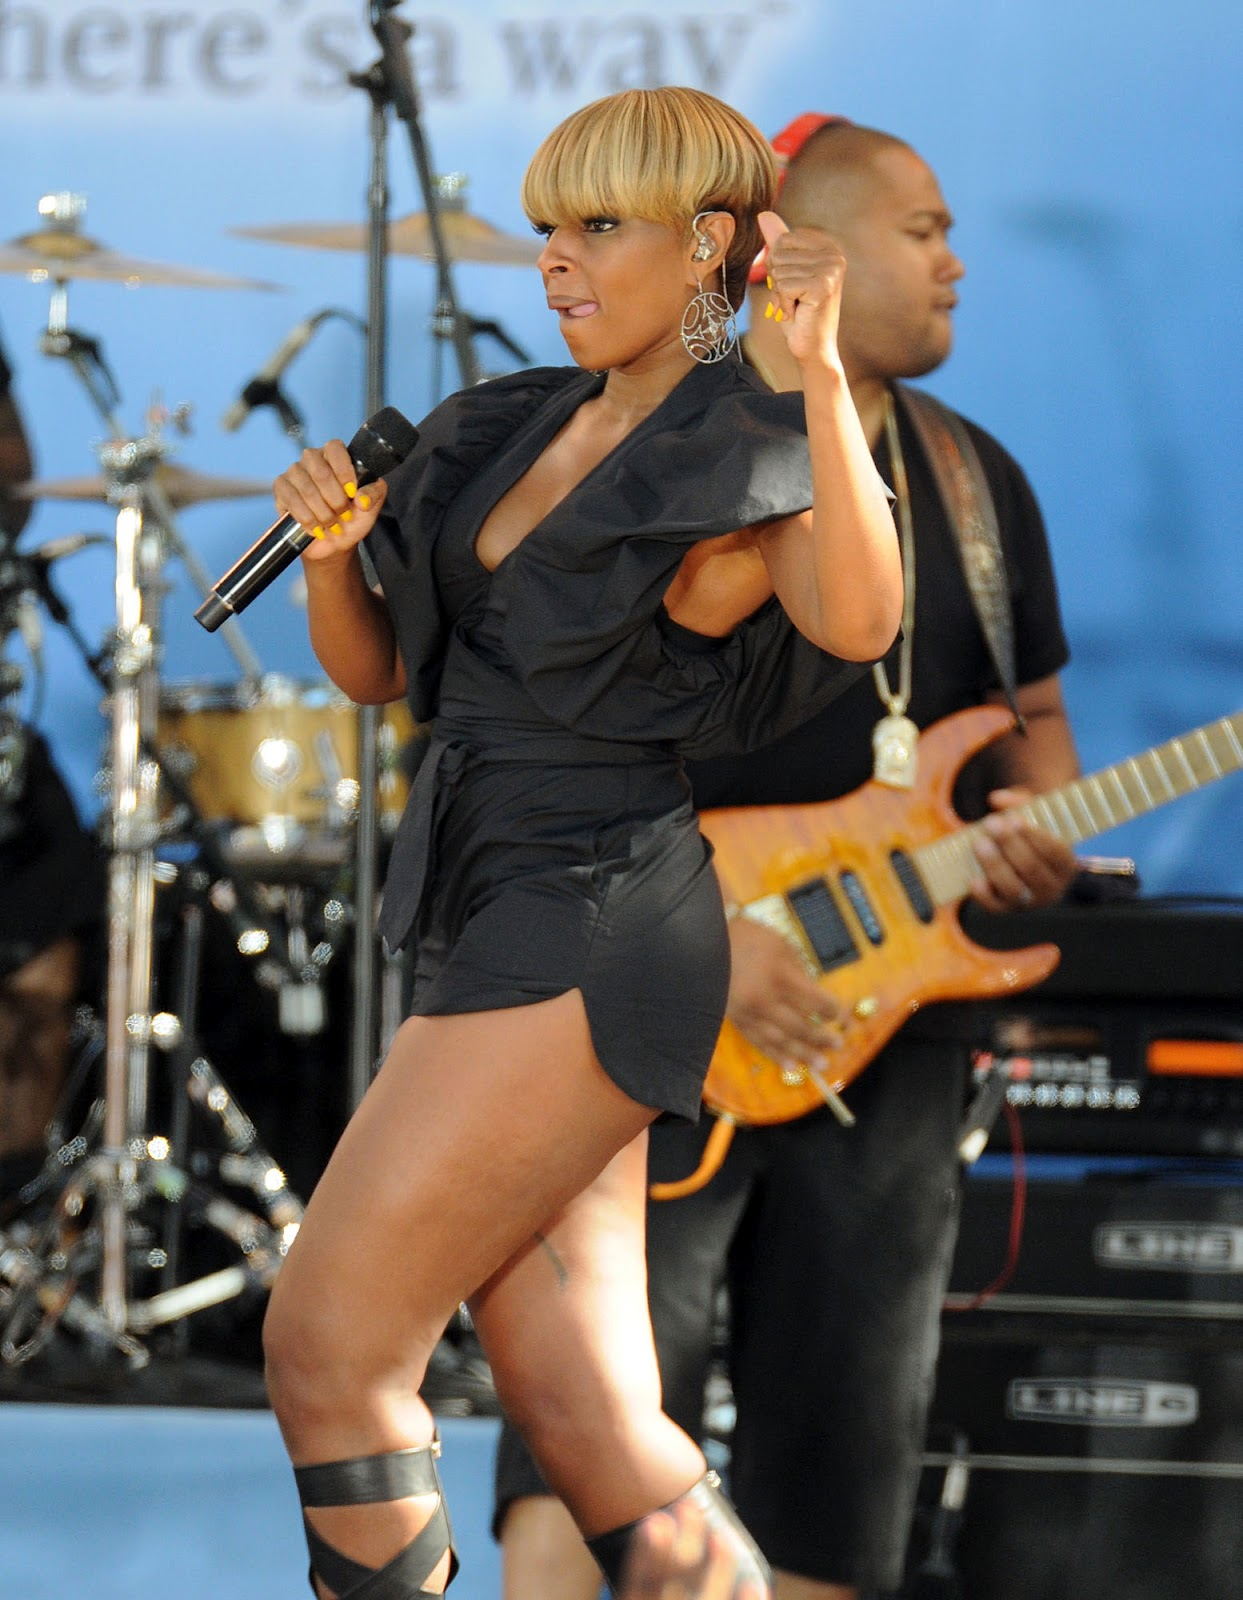 Mary J Blige Hairstyle Trends: Mary J Blige Hot Pictures Mary J Blige Cars